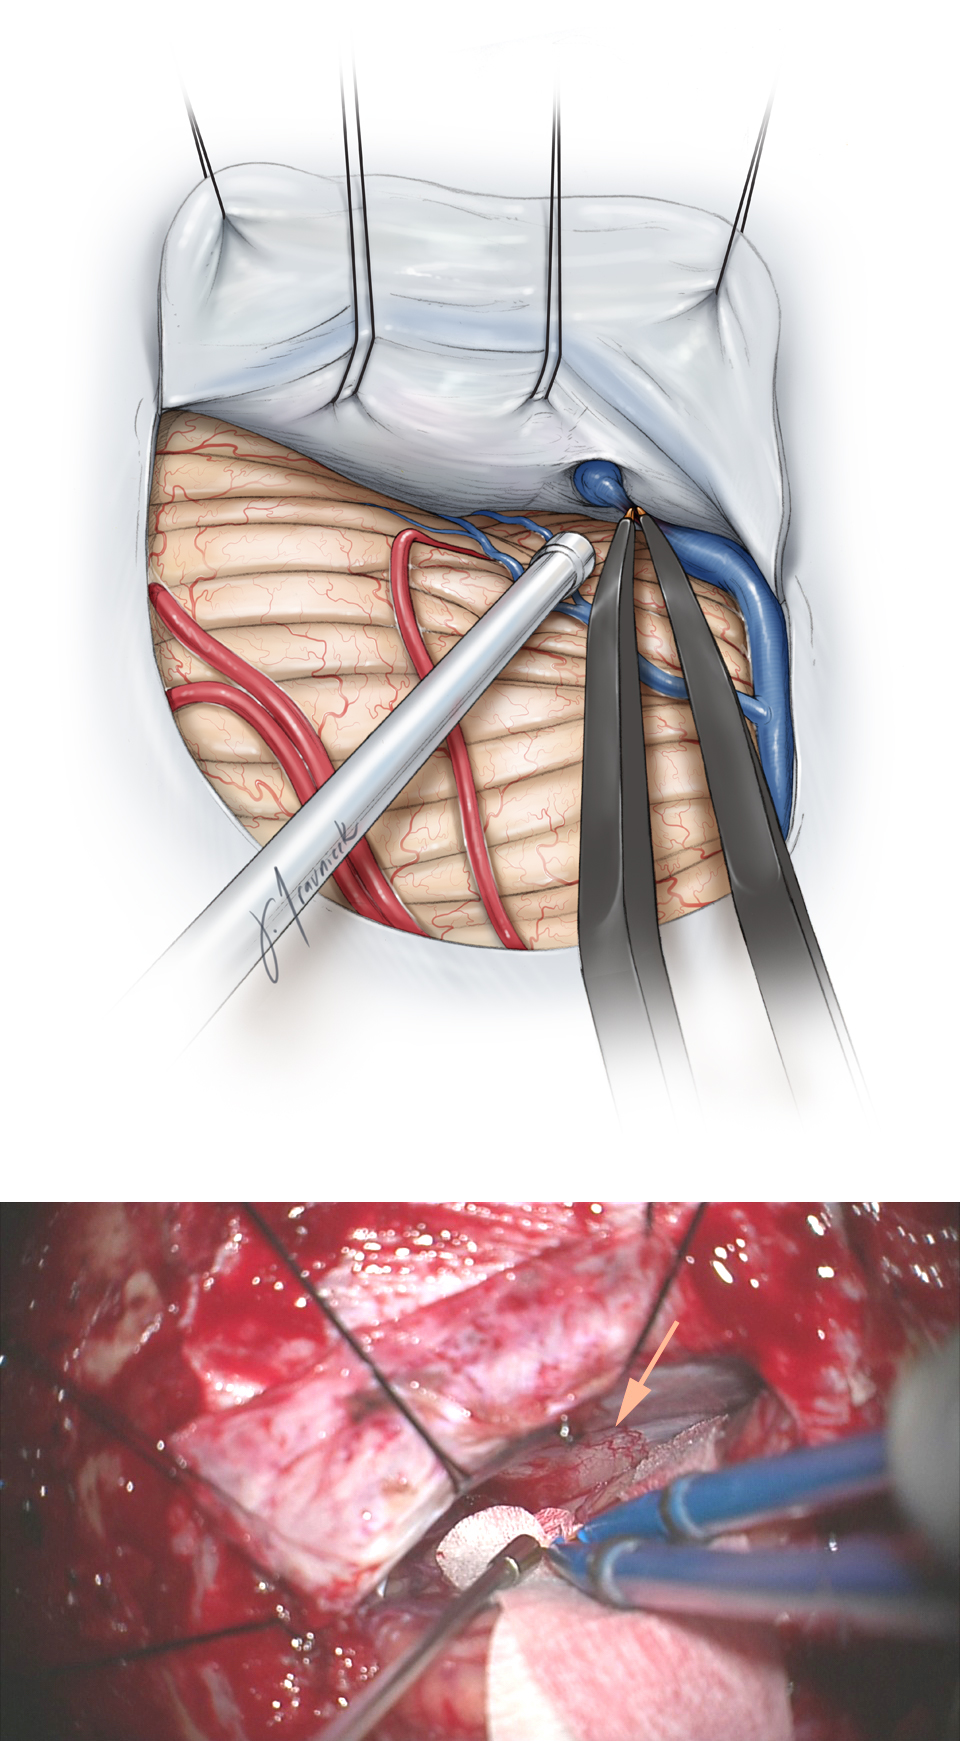 Figure 5: A parasagittal bridging vein may be disconnected for expansion of the supracerebellar corridor (top illustration). The tumor-infiltrated tentorium (arrow) is exposed (bottom photo).